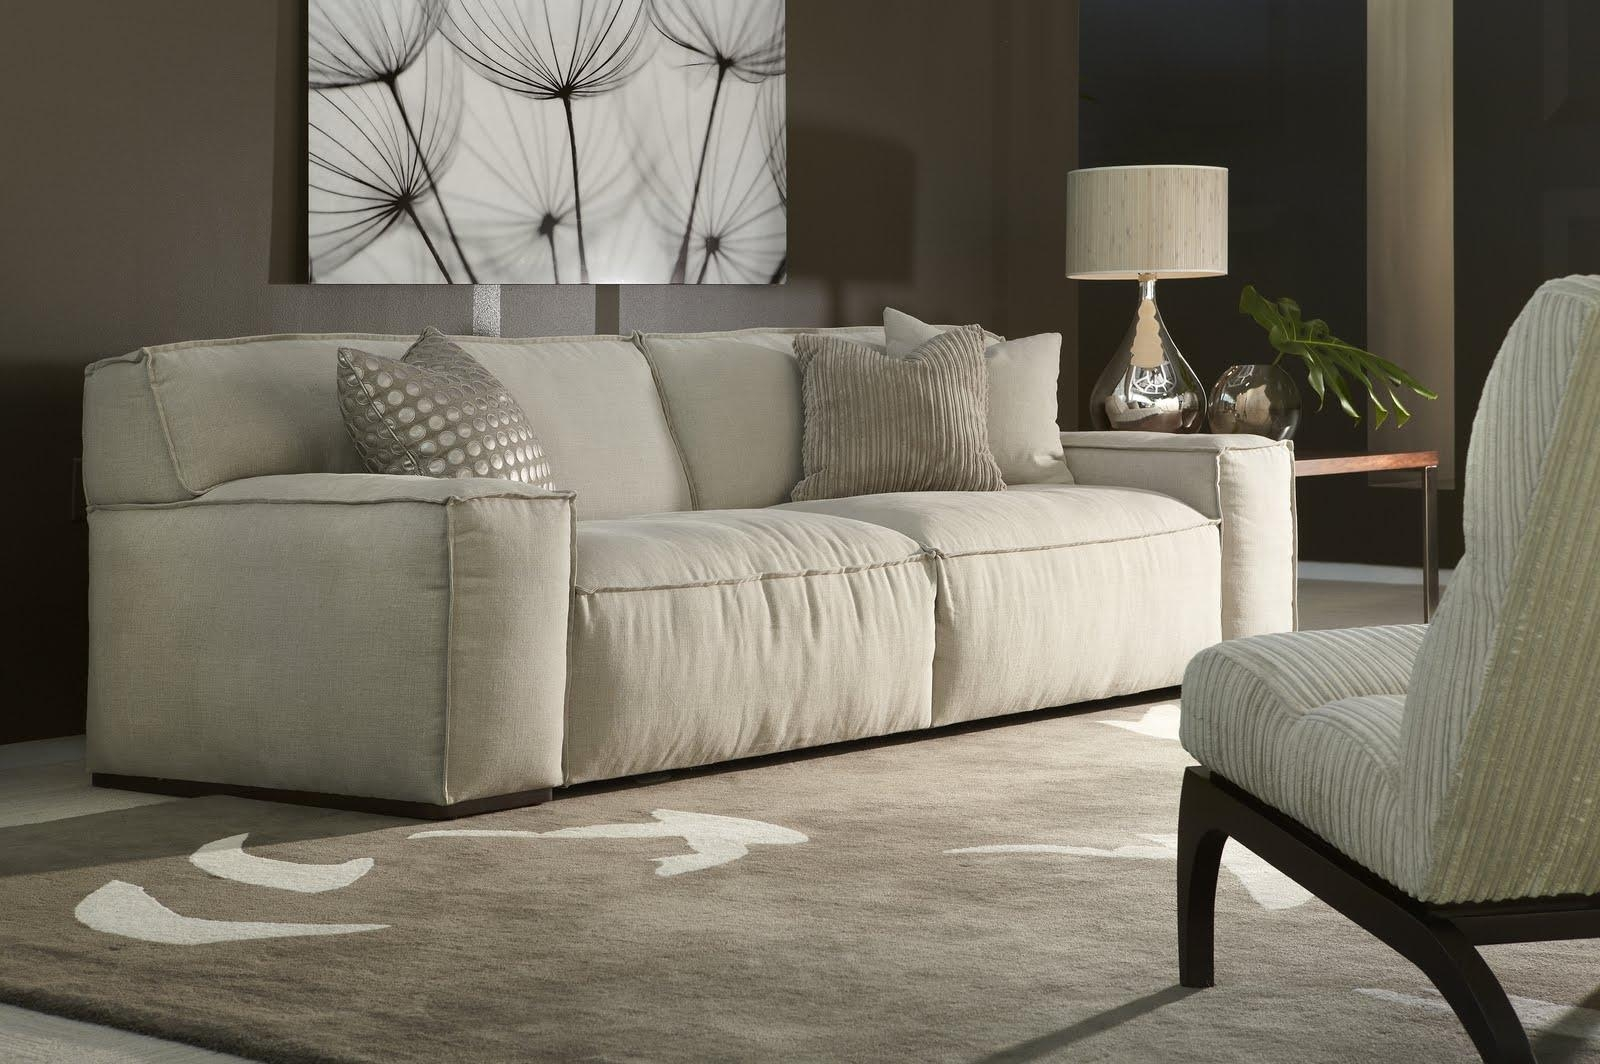 Sofas Center : Excellent Down Sectional Sofa Images Concept Within Down Filled Sectional Sofa (Photo 9 of 15)